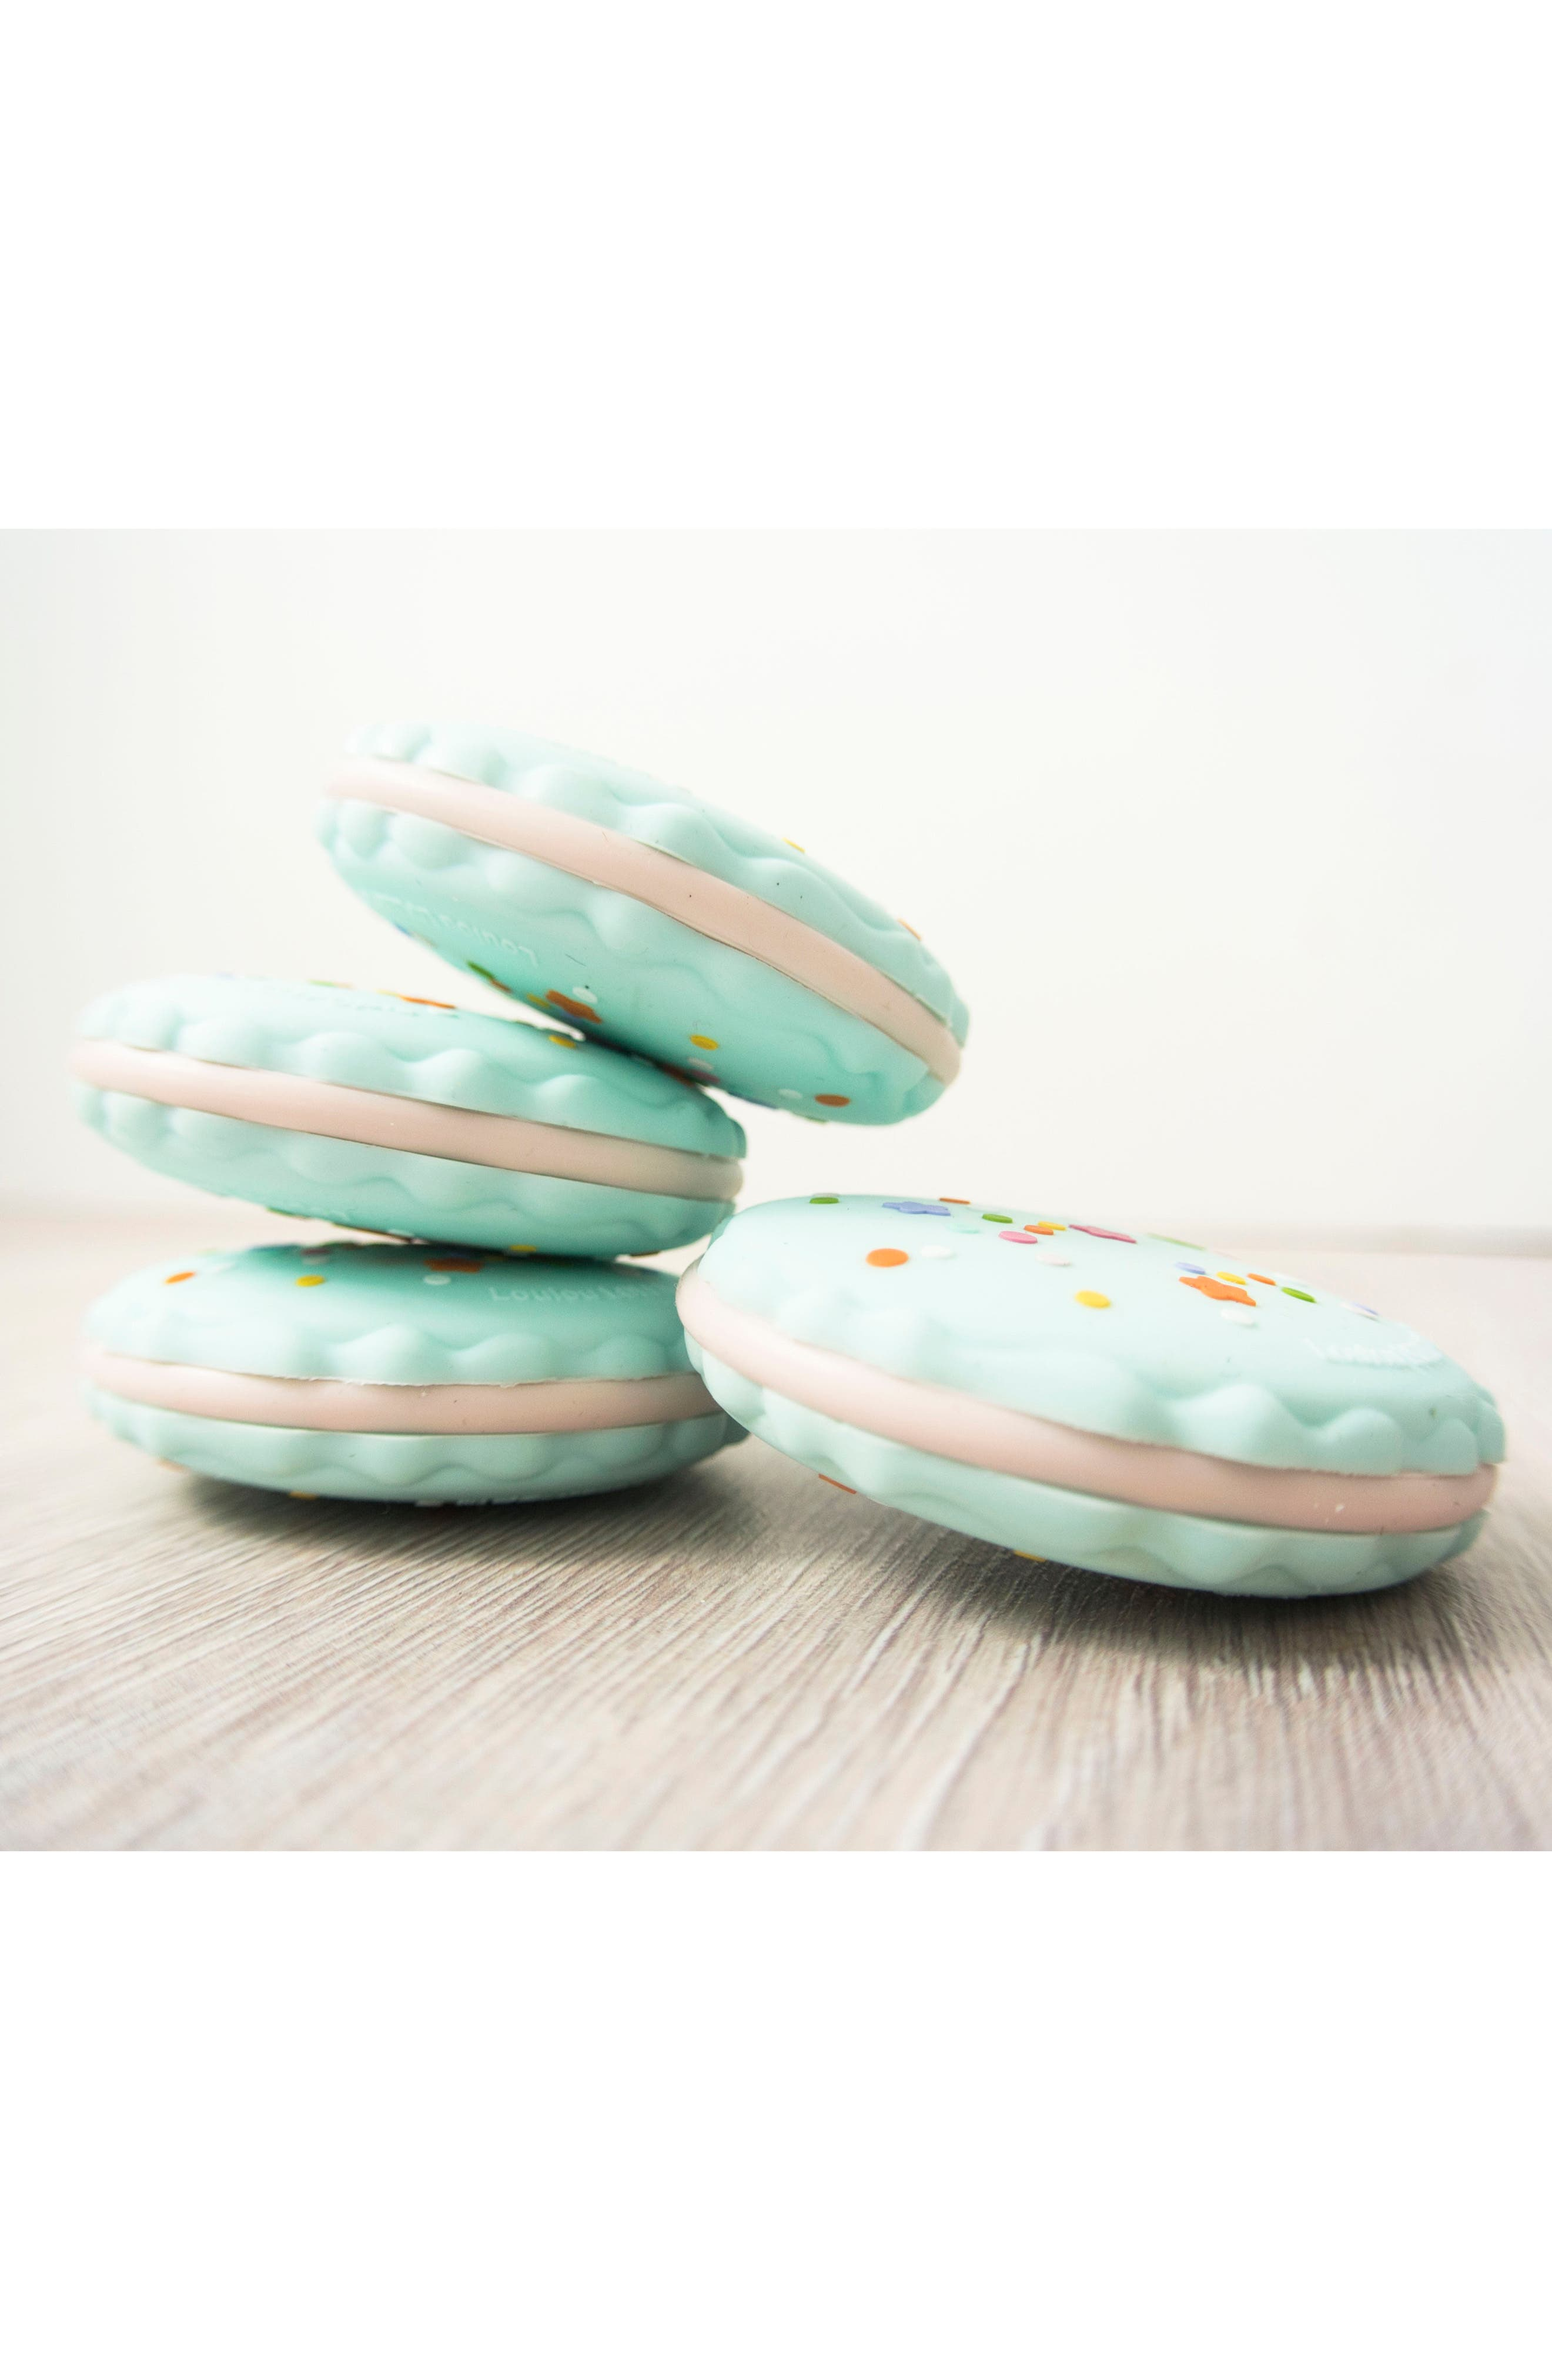 Macaron Teething Toy,                             Alternate thumbnail 2, color,                             Seafoam